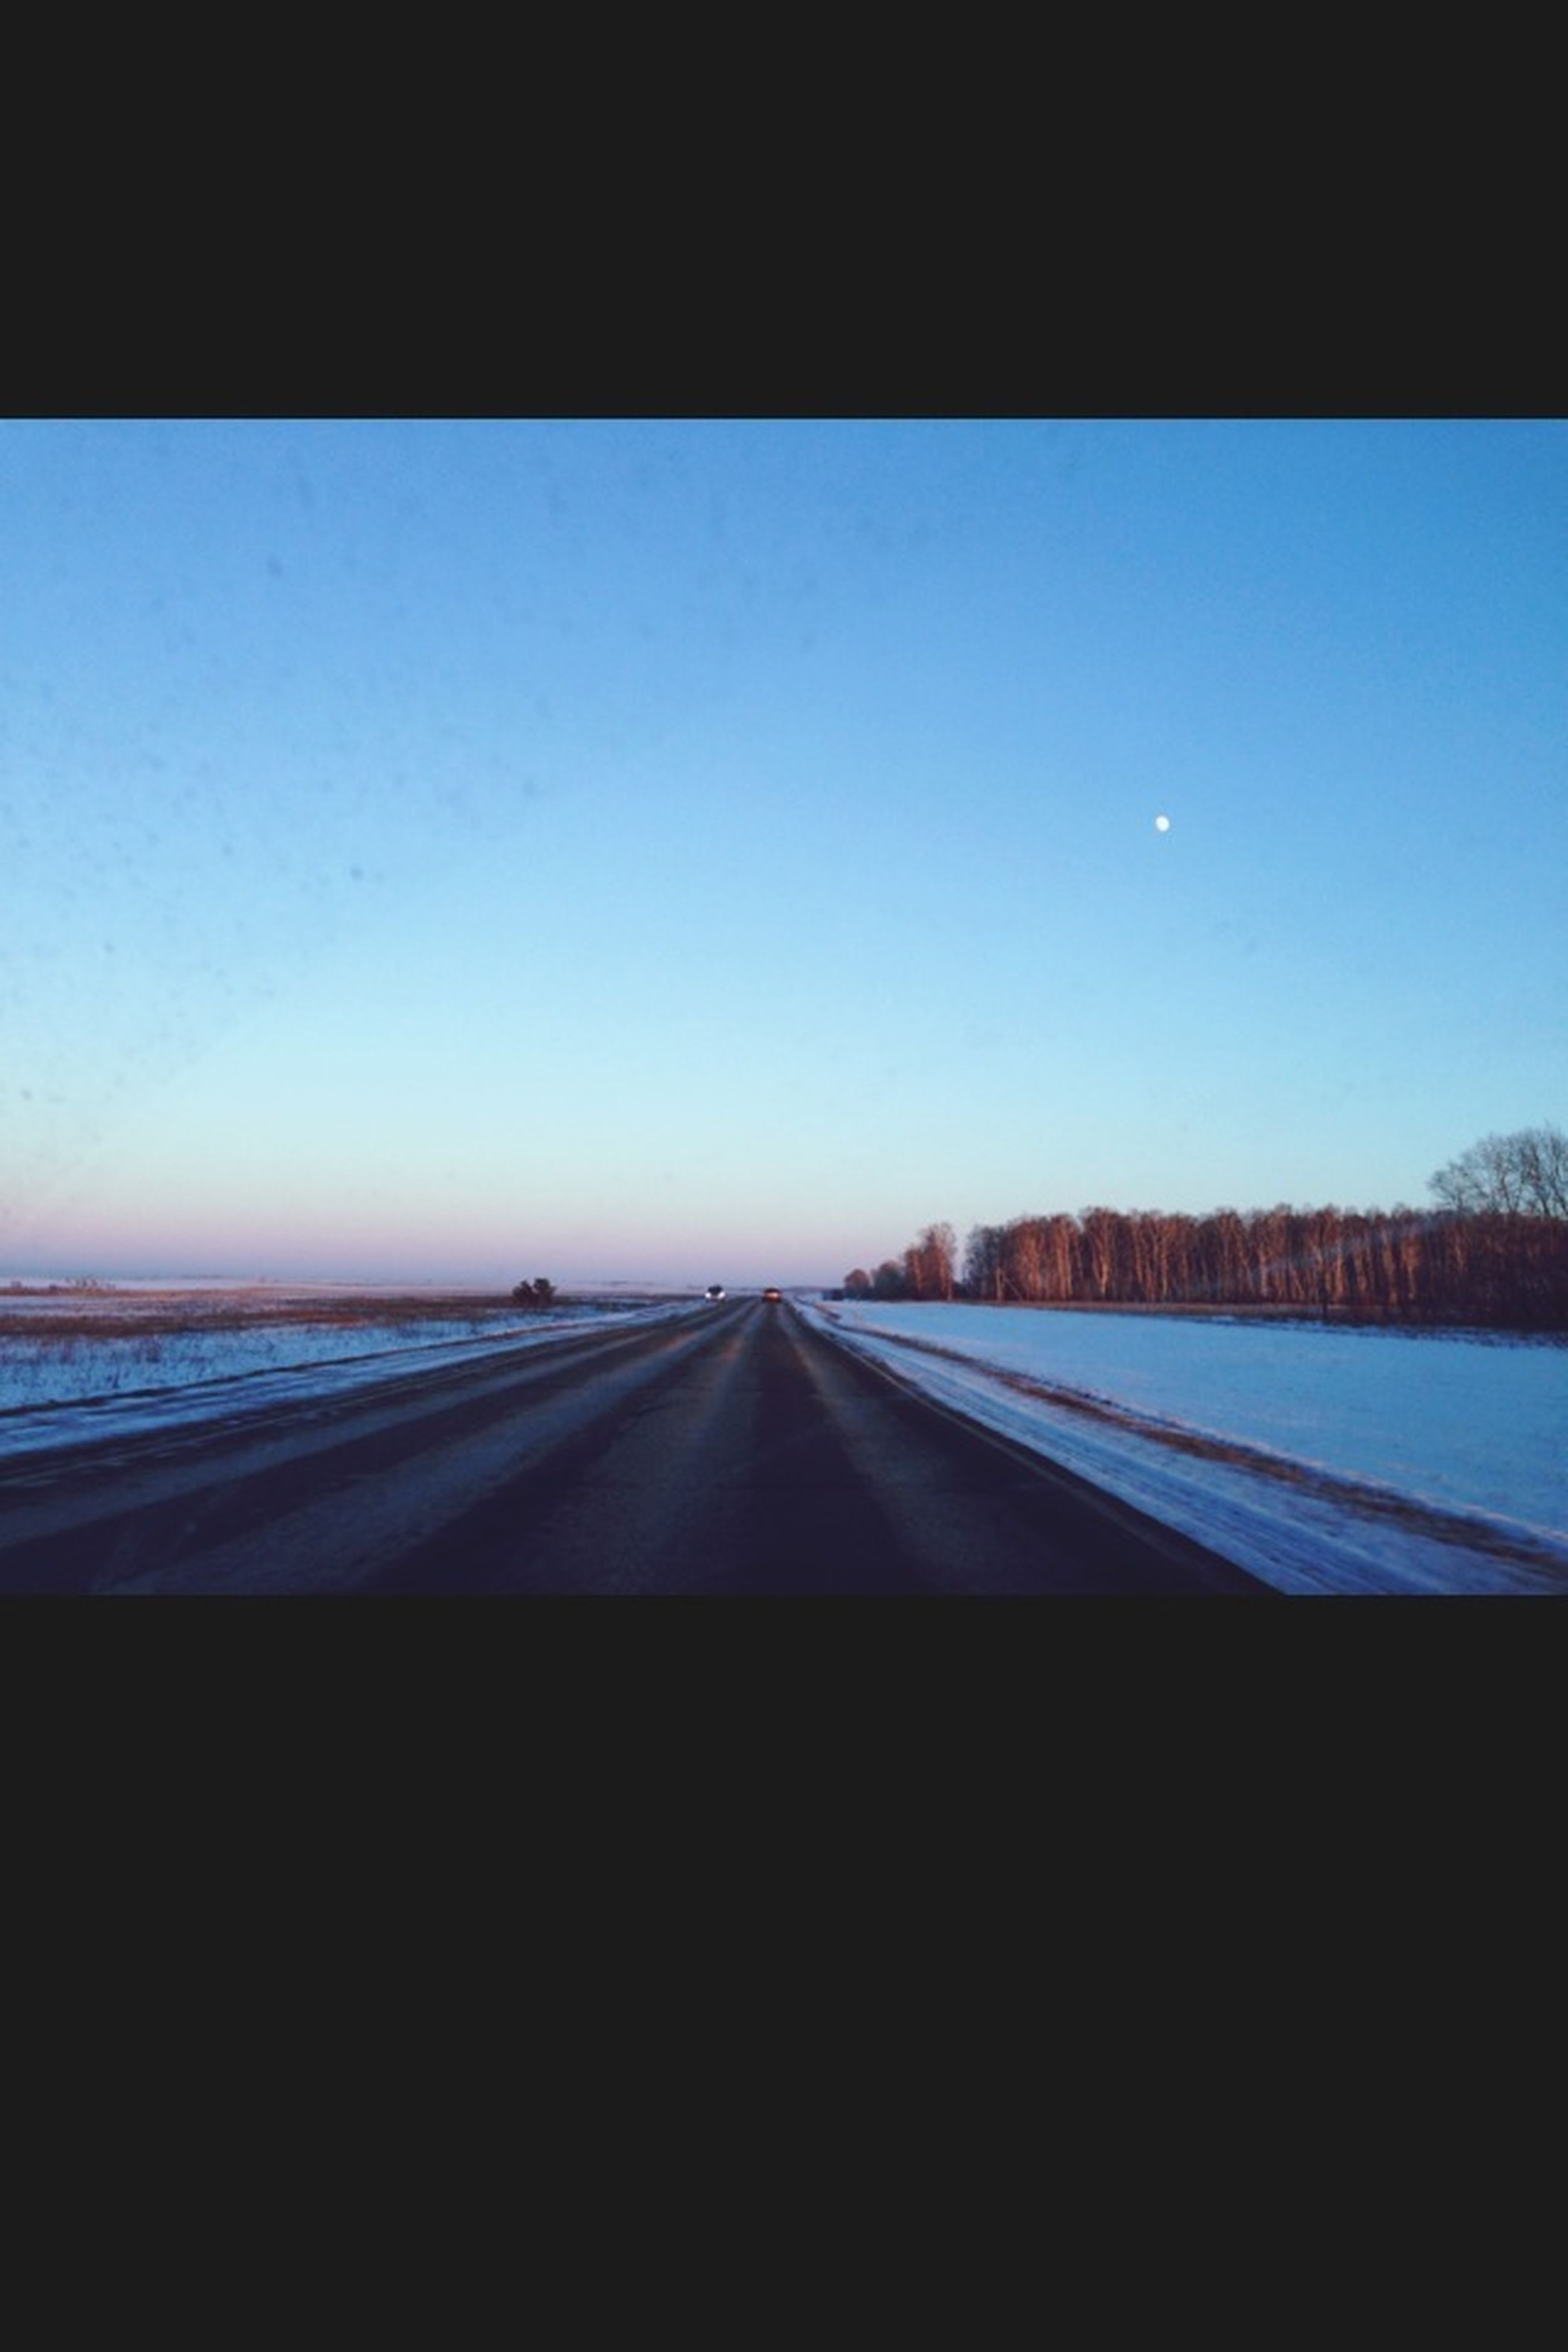 the way forward, transportation, diminishing perspective, vanishing point, clear sky, road, copy space, road marking, blue, transfer print, long, landscape, tranquil scene, sky, tranquility, country road, surface level, auto post production filter, empty, nature